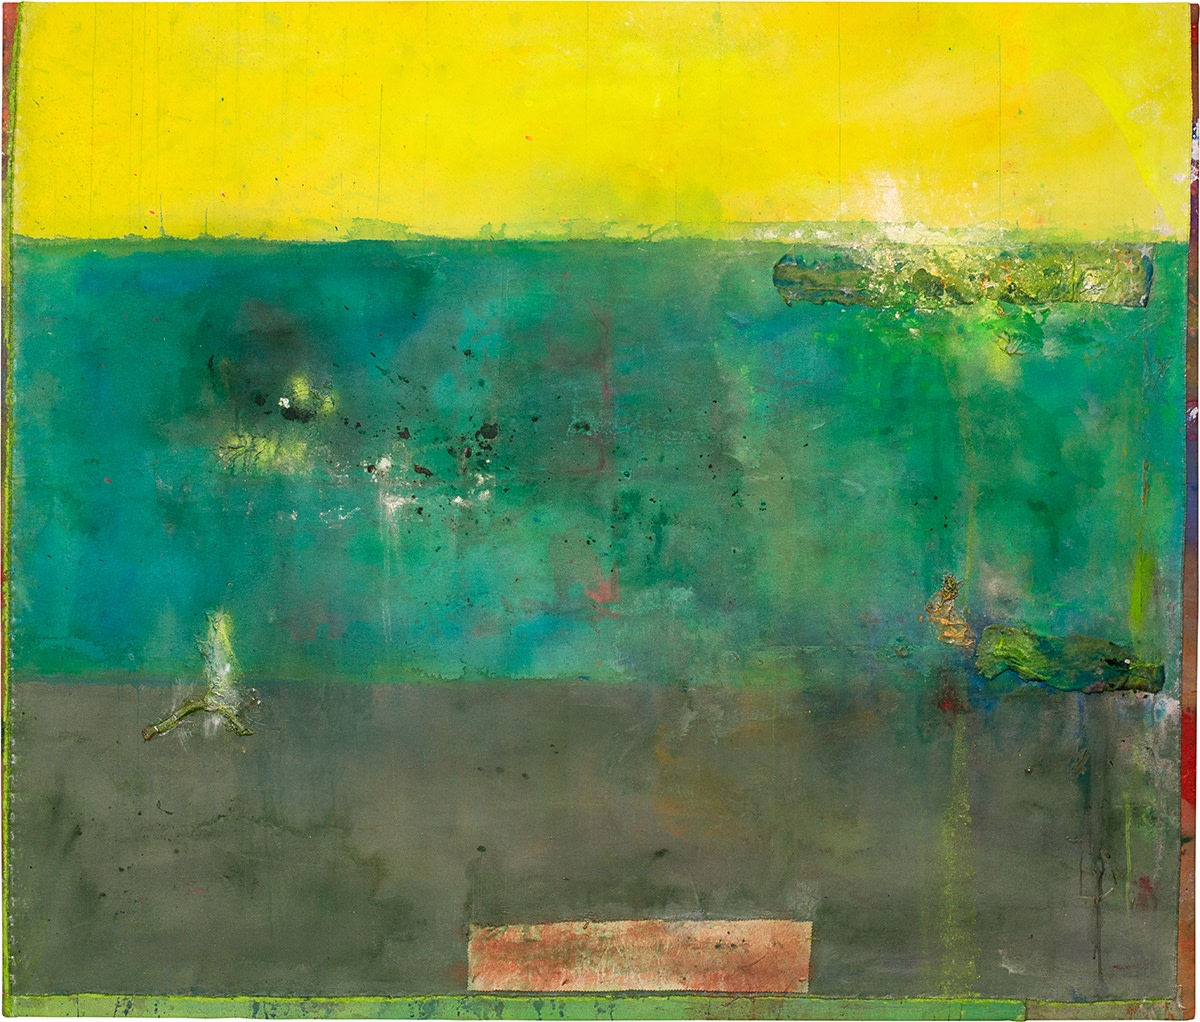 Frank Bowling, Diver, 2016, Acrylic on collaged canvas, 158.9 x 186.5 cm, 62 1/2 x 73 3/8 in